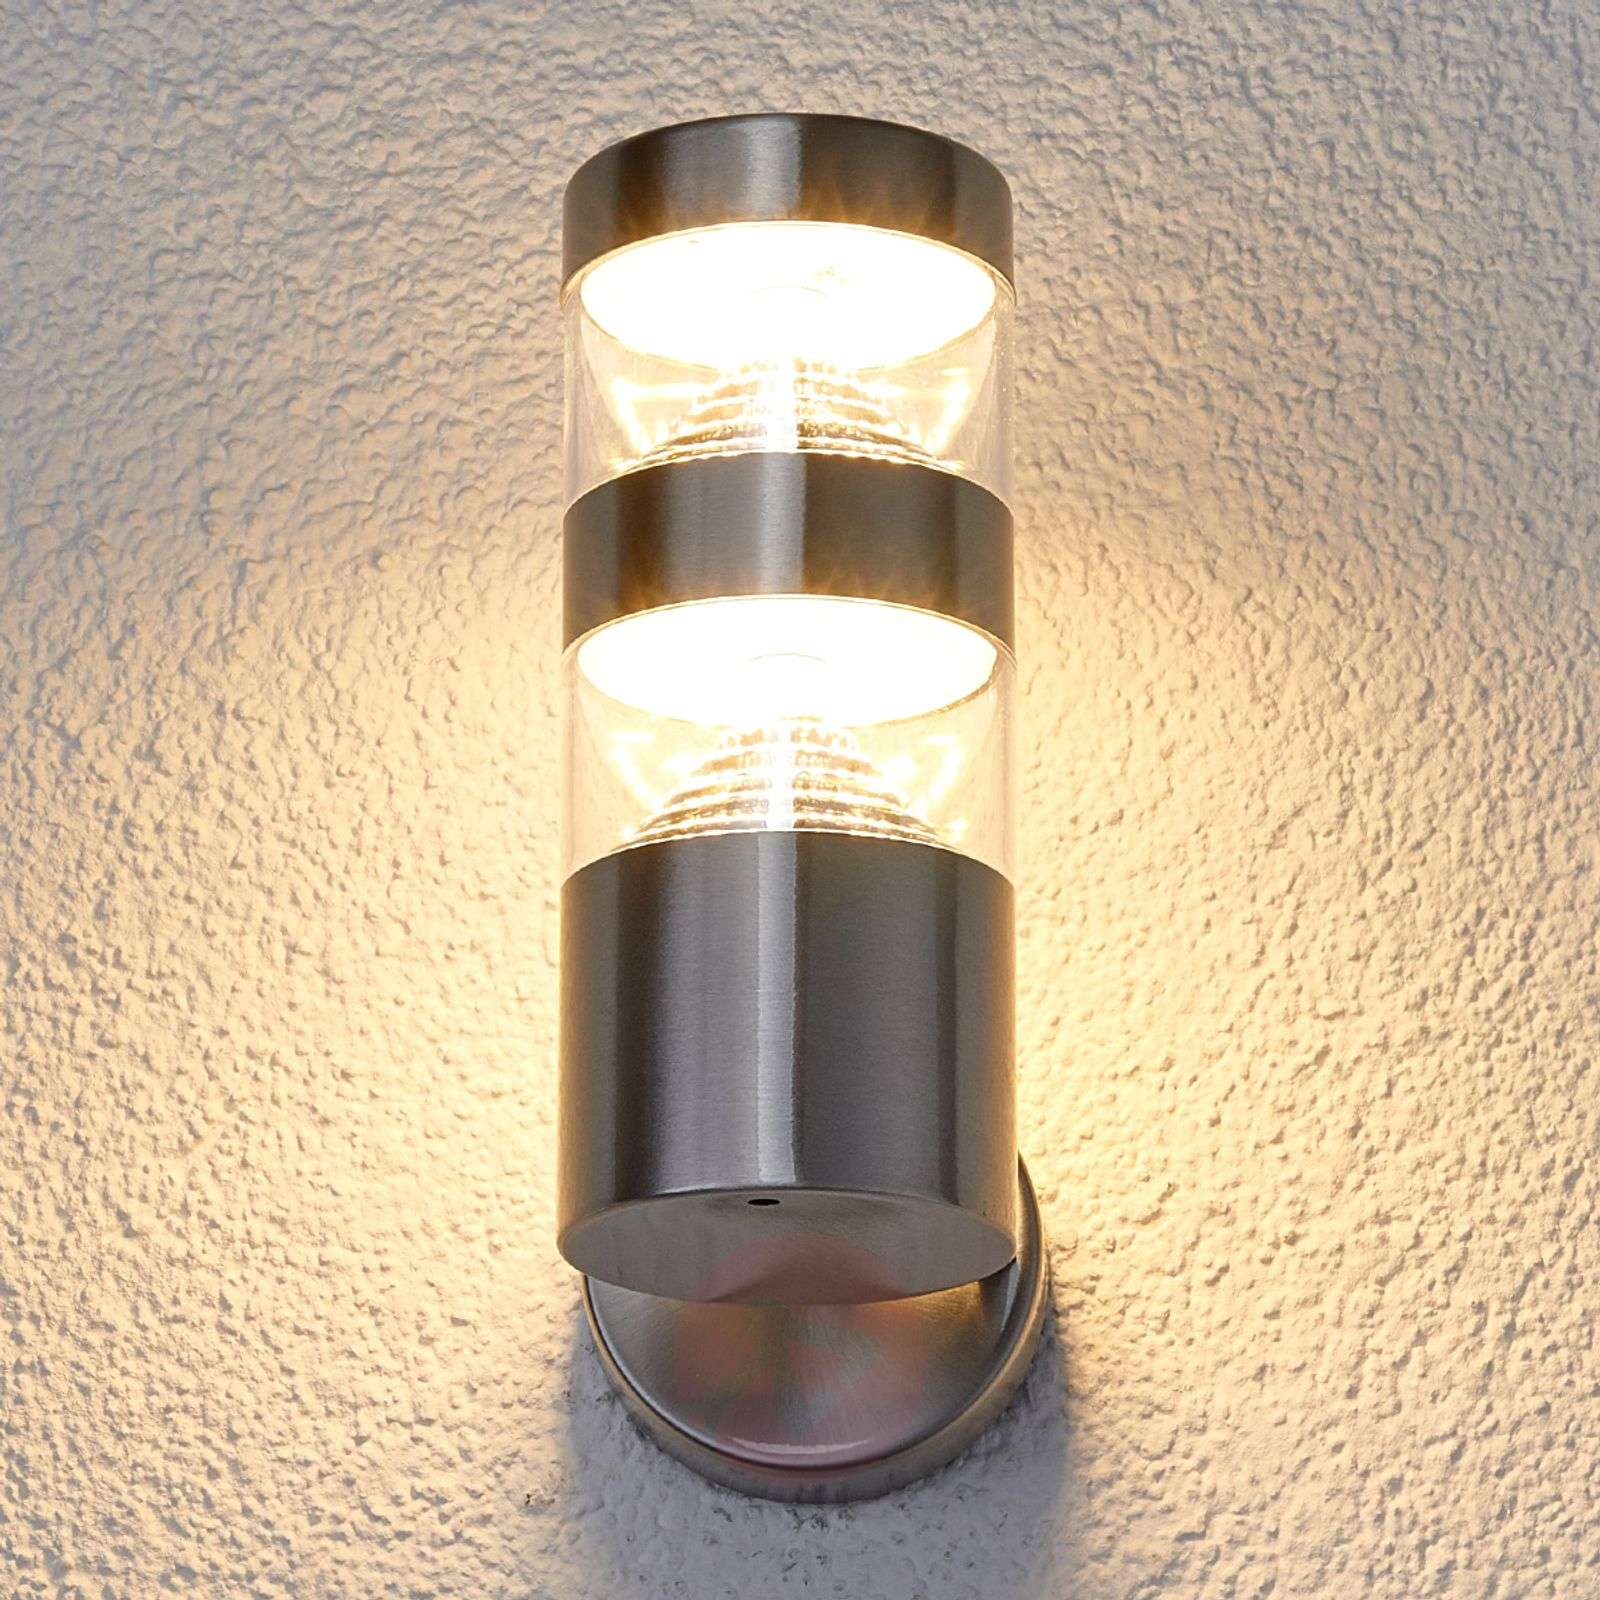 Stainless steel LED outdoor wall light Lanea | Lights.co.uk